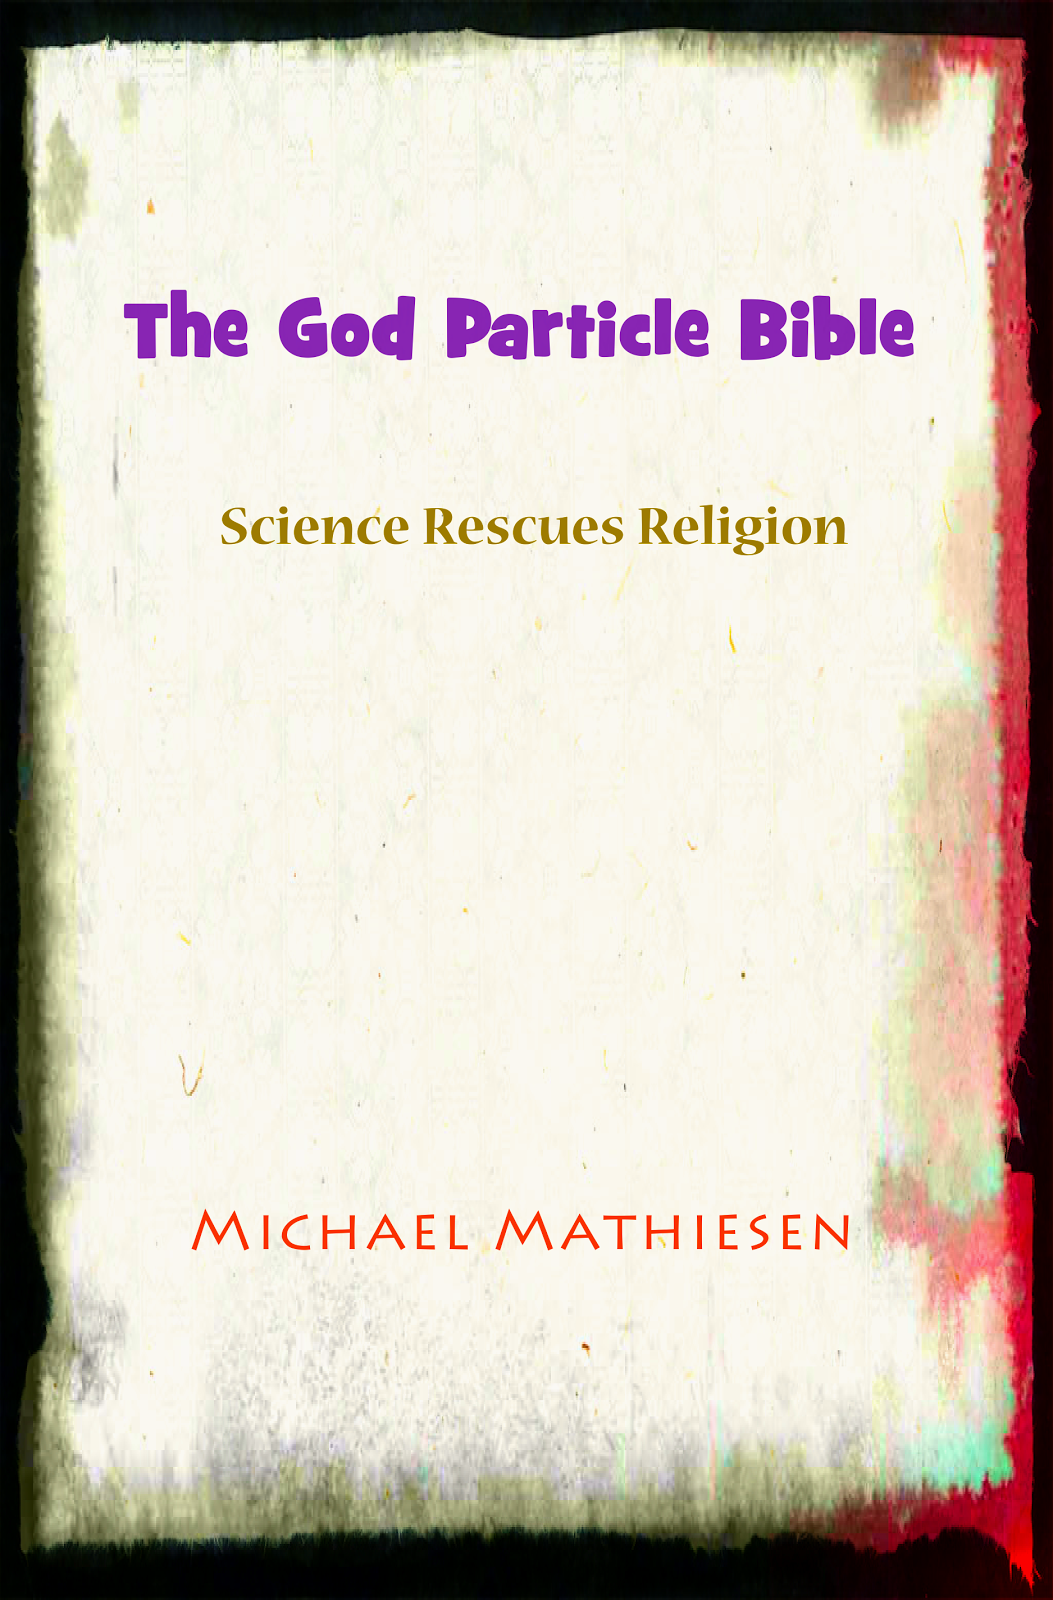 My Research On The God Particle